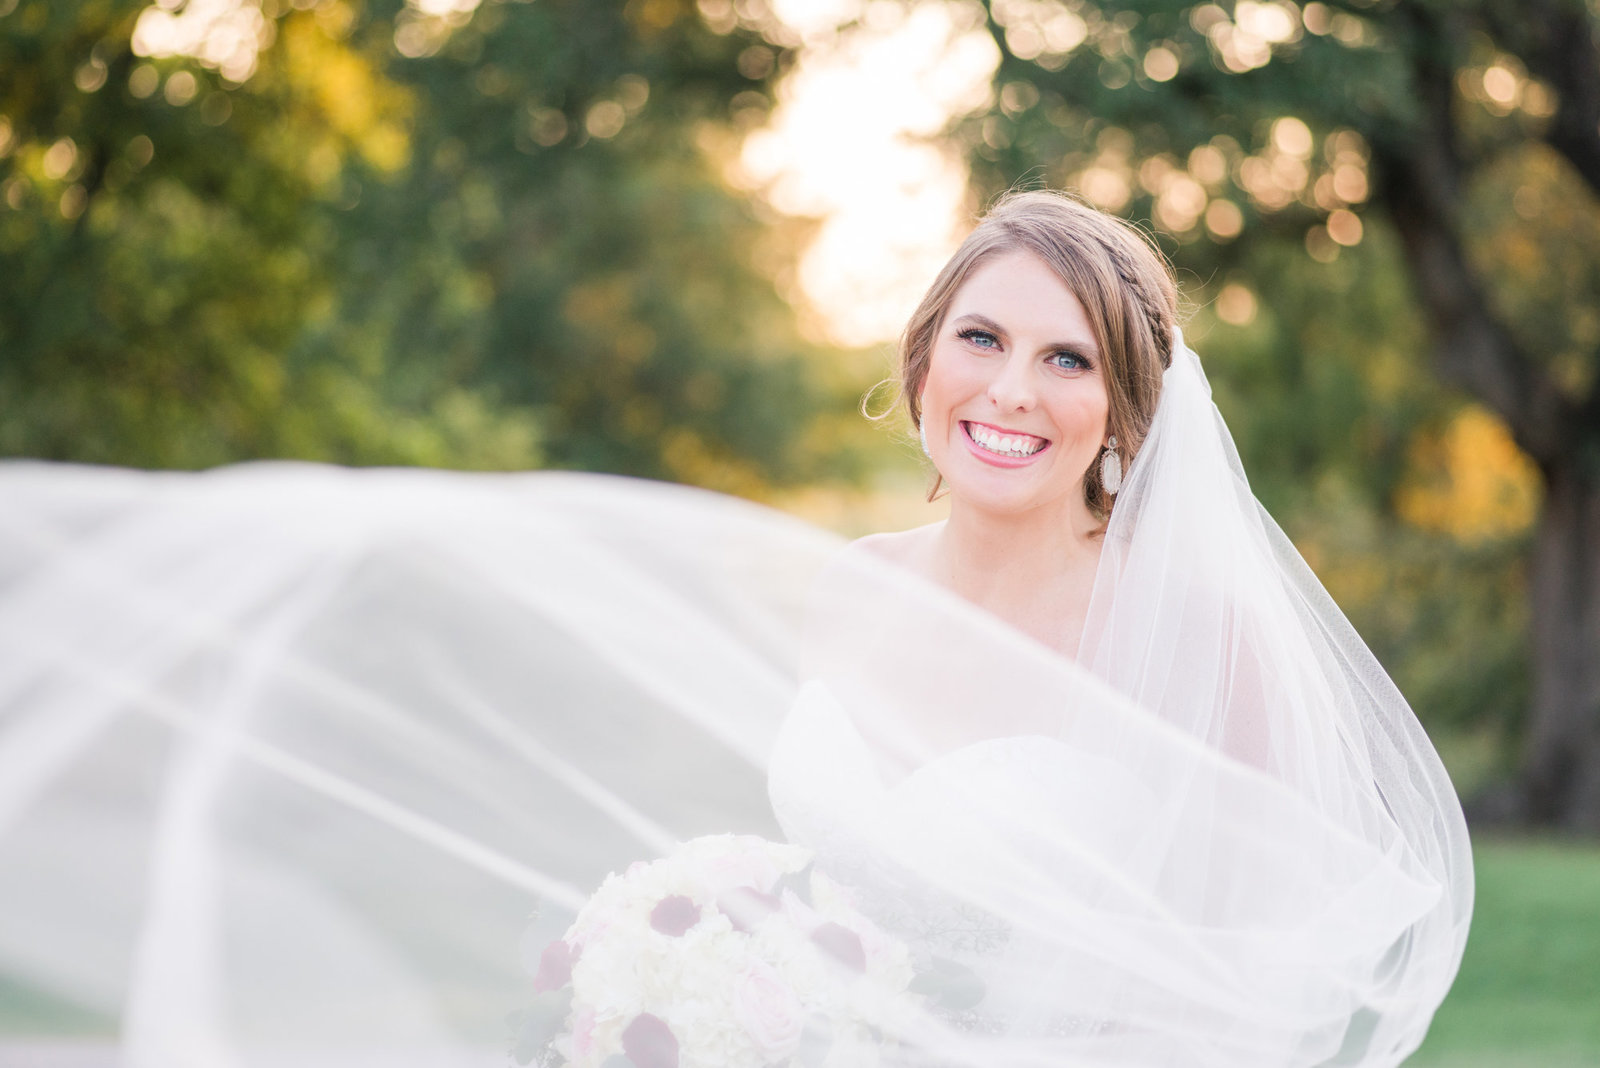 Bride's veil flies at the camera during her bridal session at Lone Oak Barn in Round Rock